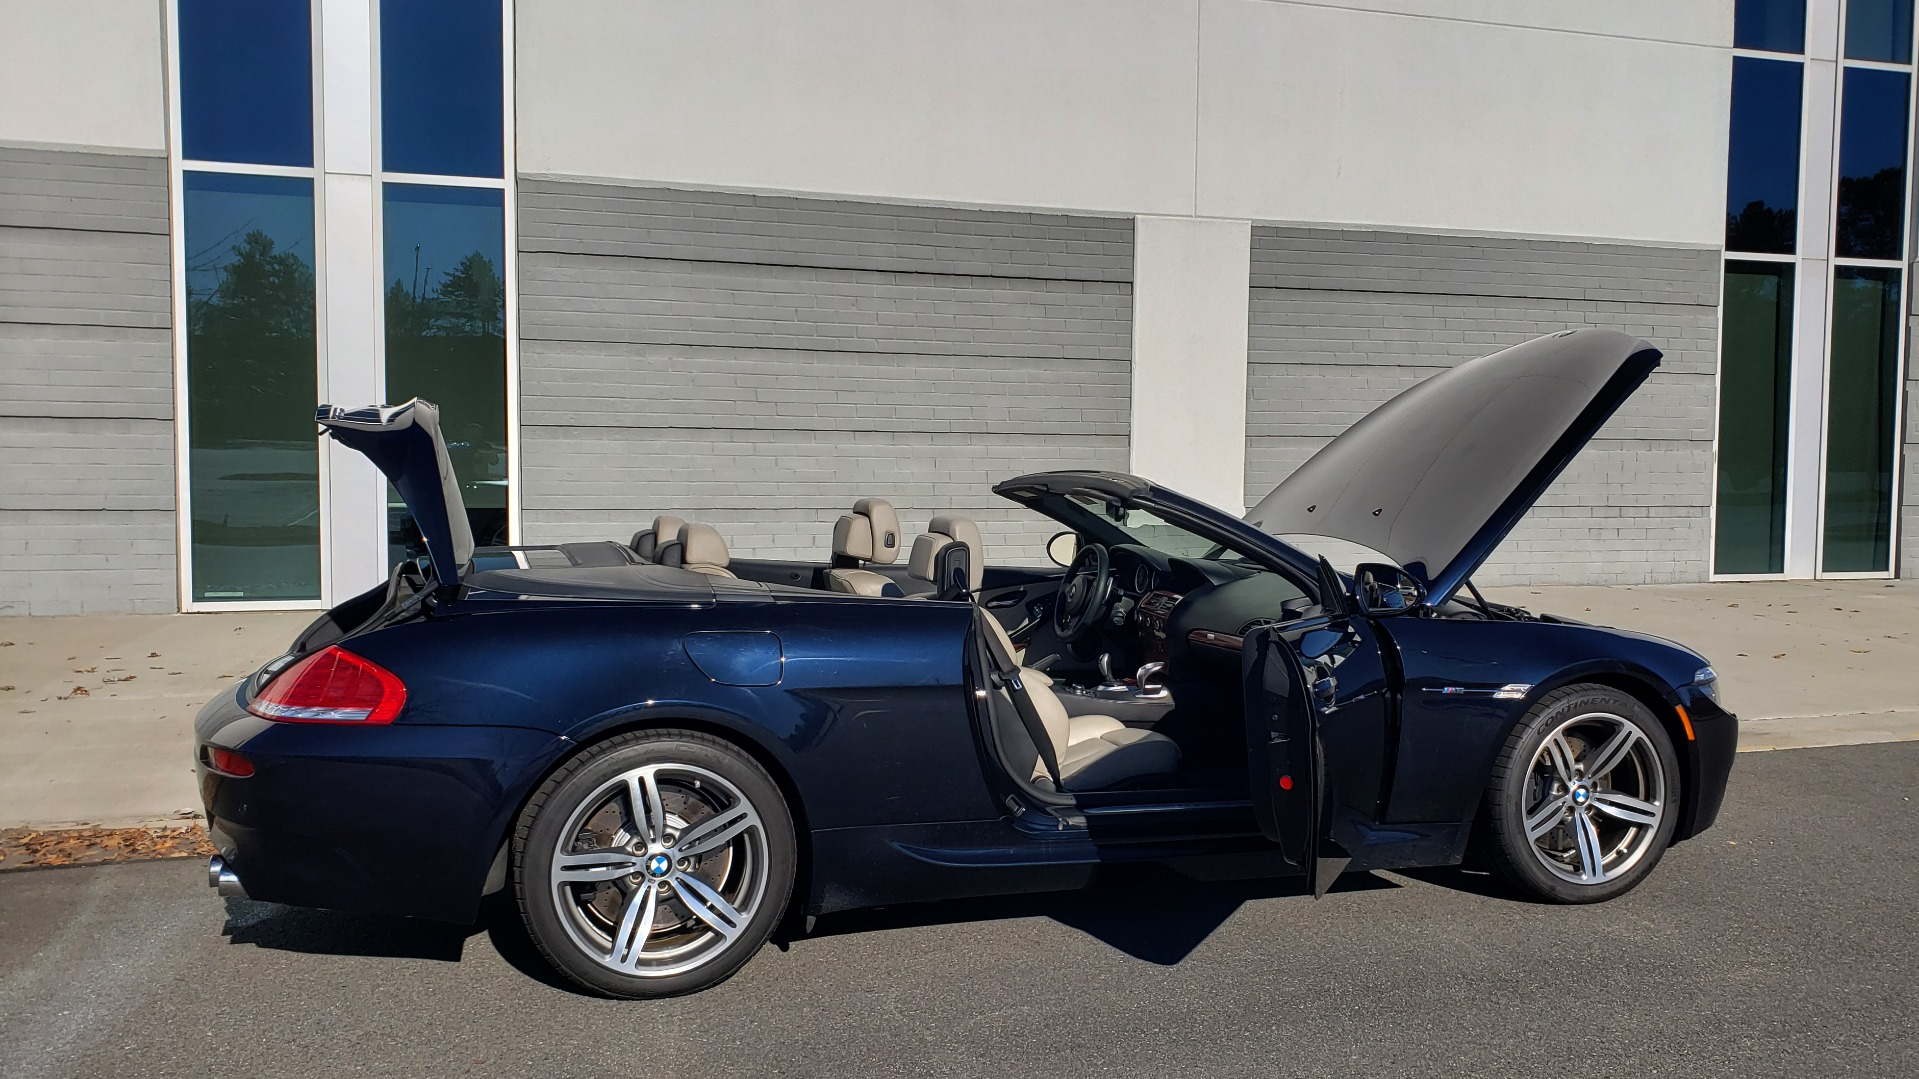 Used 2009 BMW M6 CONVERTIBLE / 5.0L V10 (500HP) / PREM SND / HUD / 19IN WHEELS for sale $24,999 at Formula Imports in Charlotte NC 28227 25